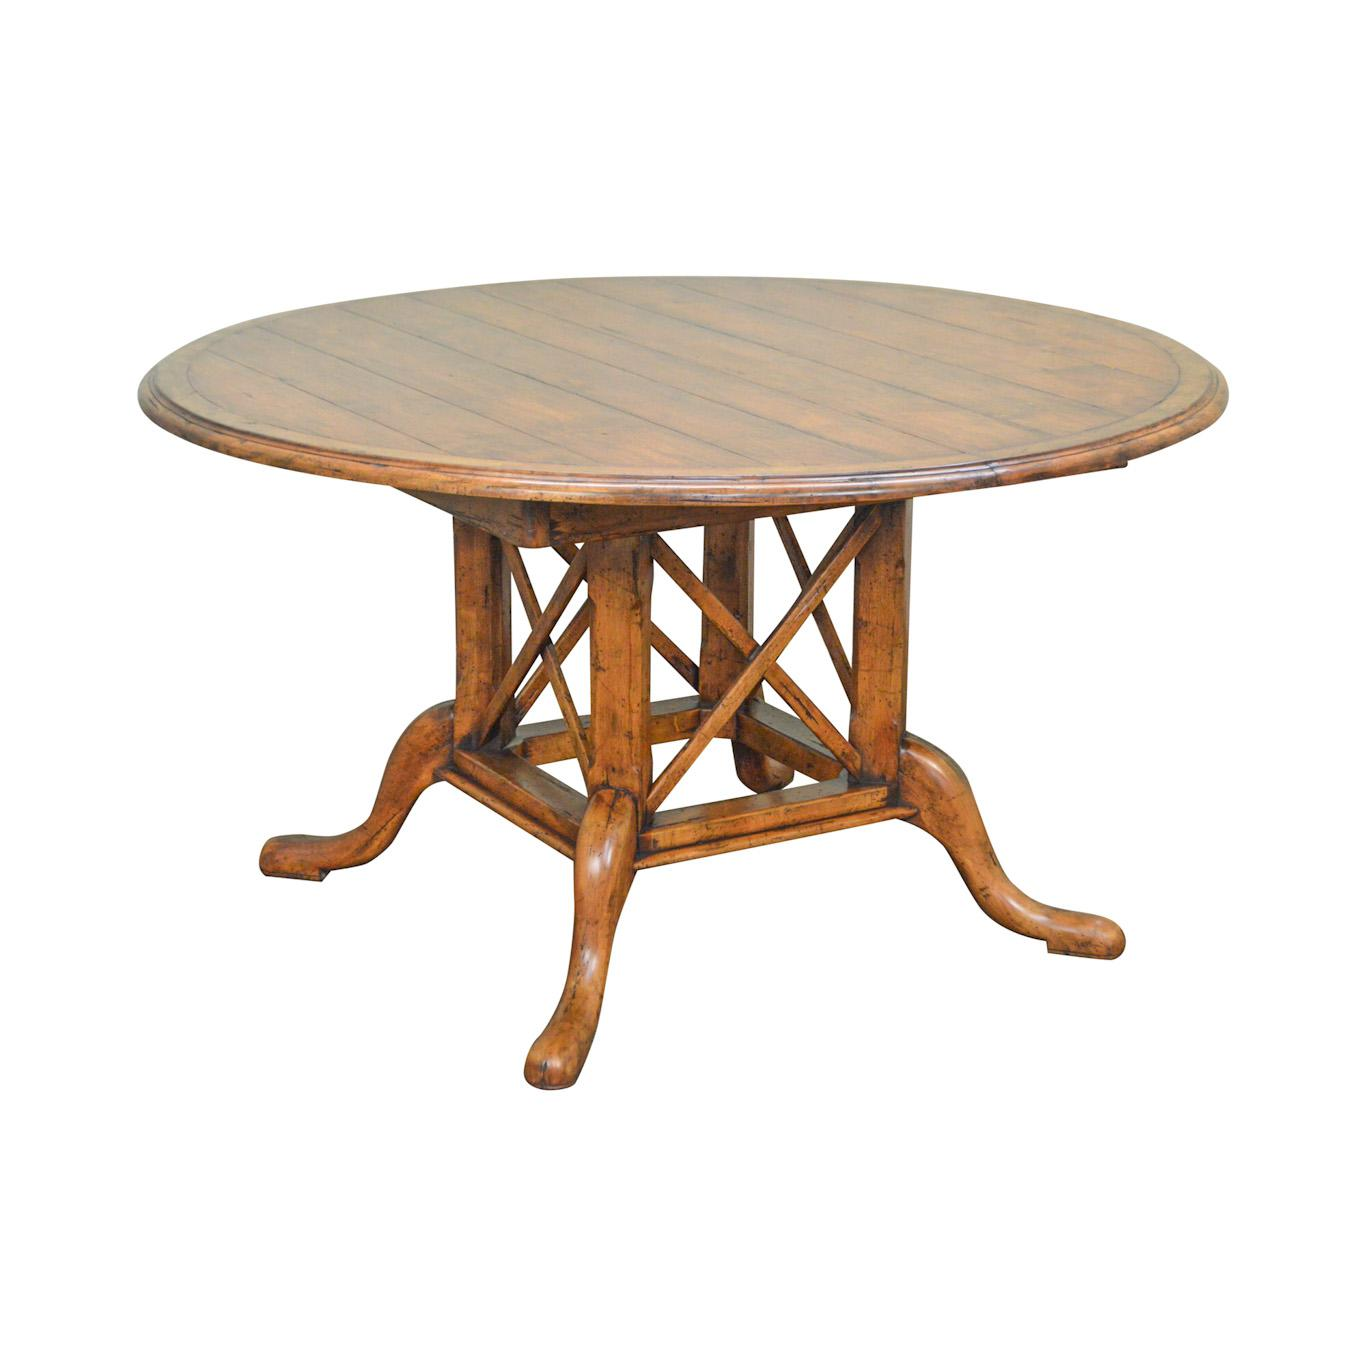 Guy Chaddock Kettering 54 Round Pedestal Dining Table W 2 Leaves